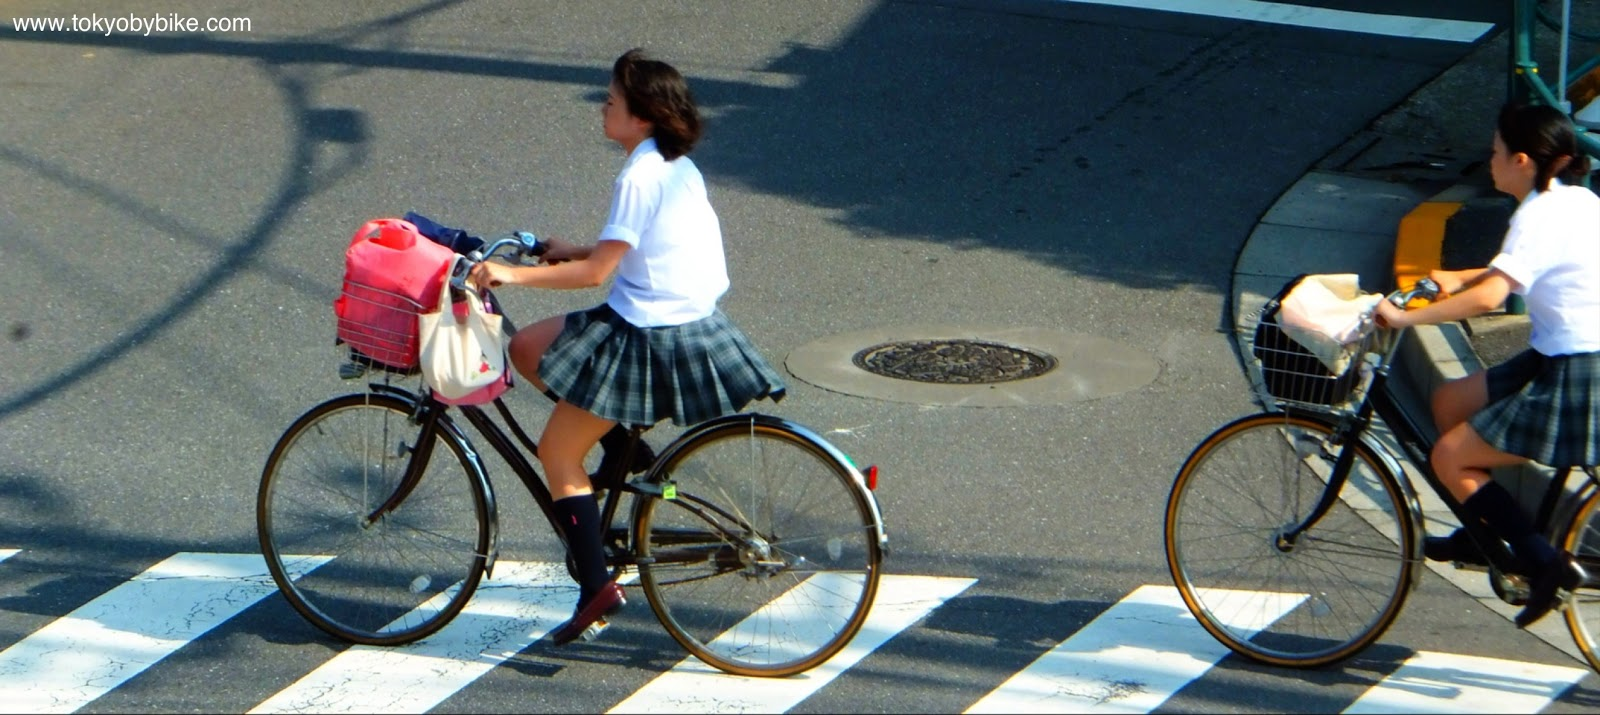 Walking And Cycling To School In Japan Tokyo By Bike Cycling